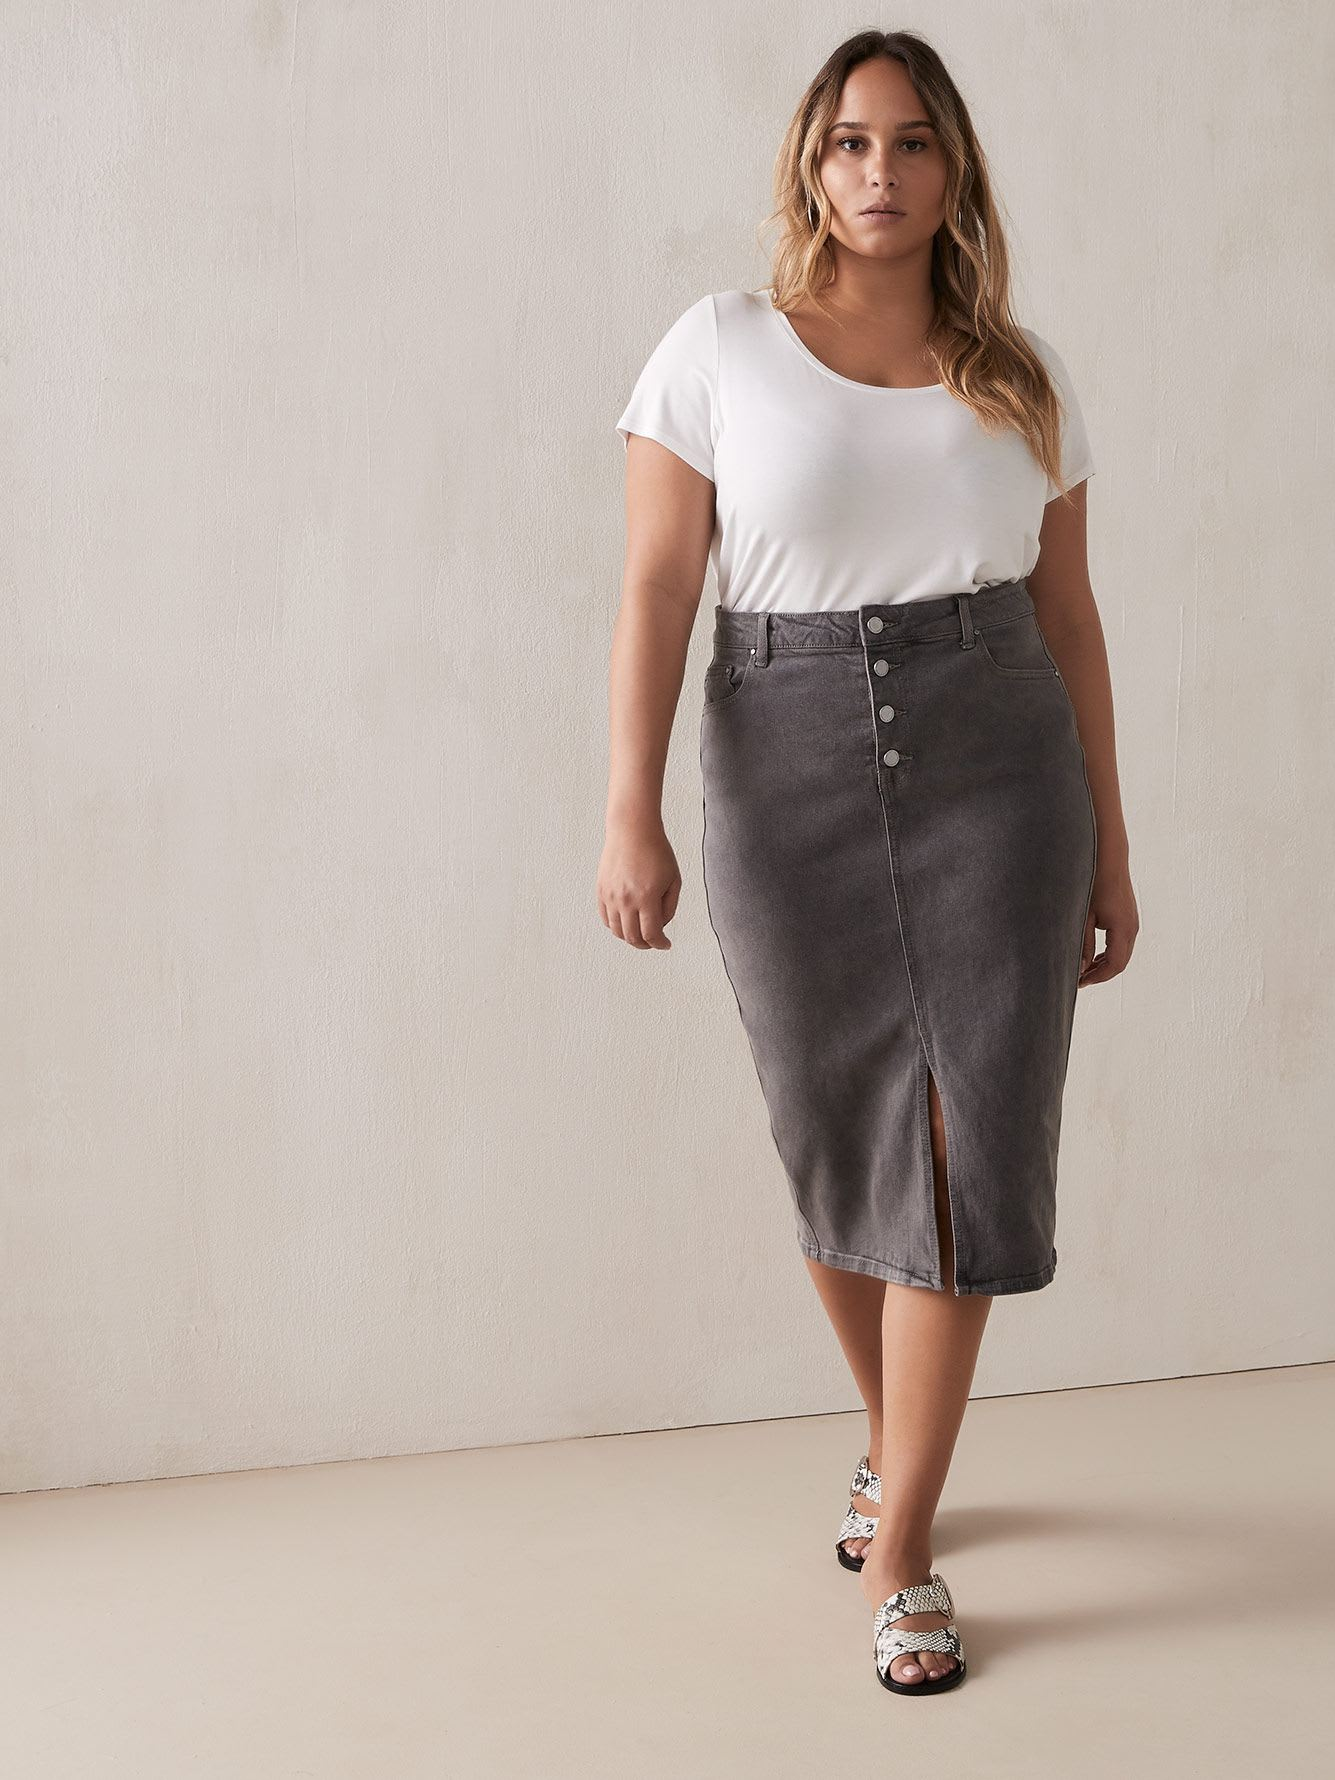 Grey Denim Pencil Skirt with Exposed Button-Fly - Lost Ink